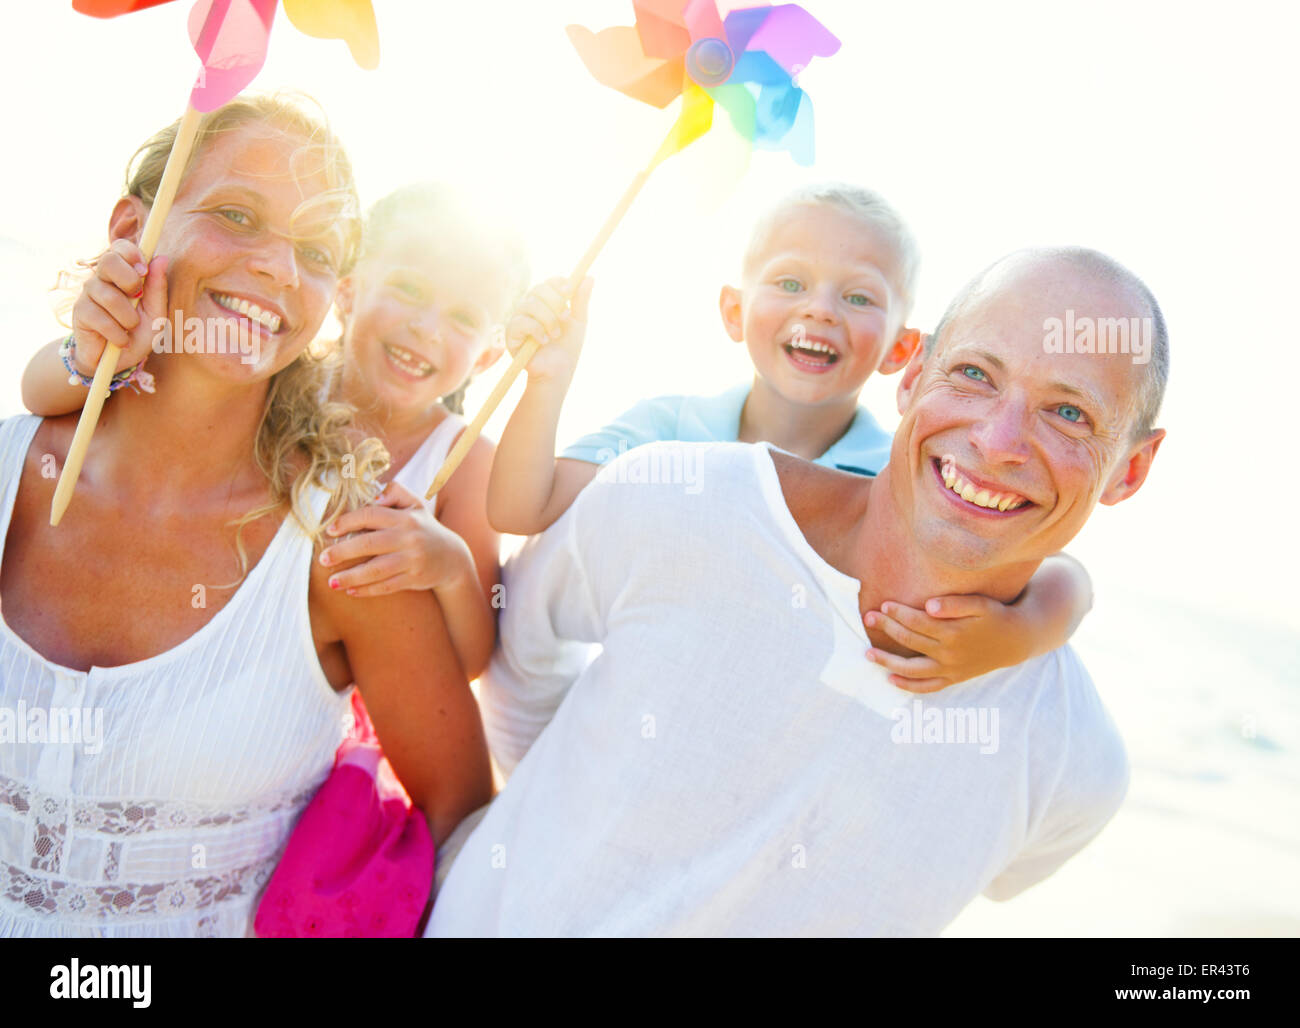 Young family enjoying their summer vacation. - Stock Image